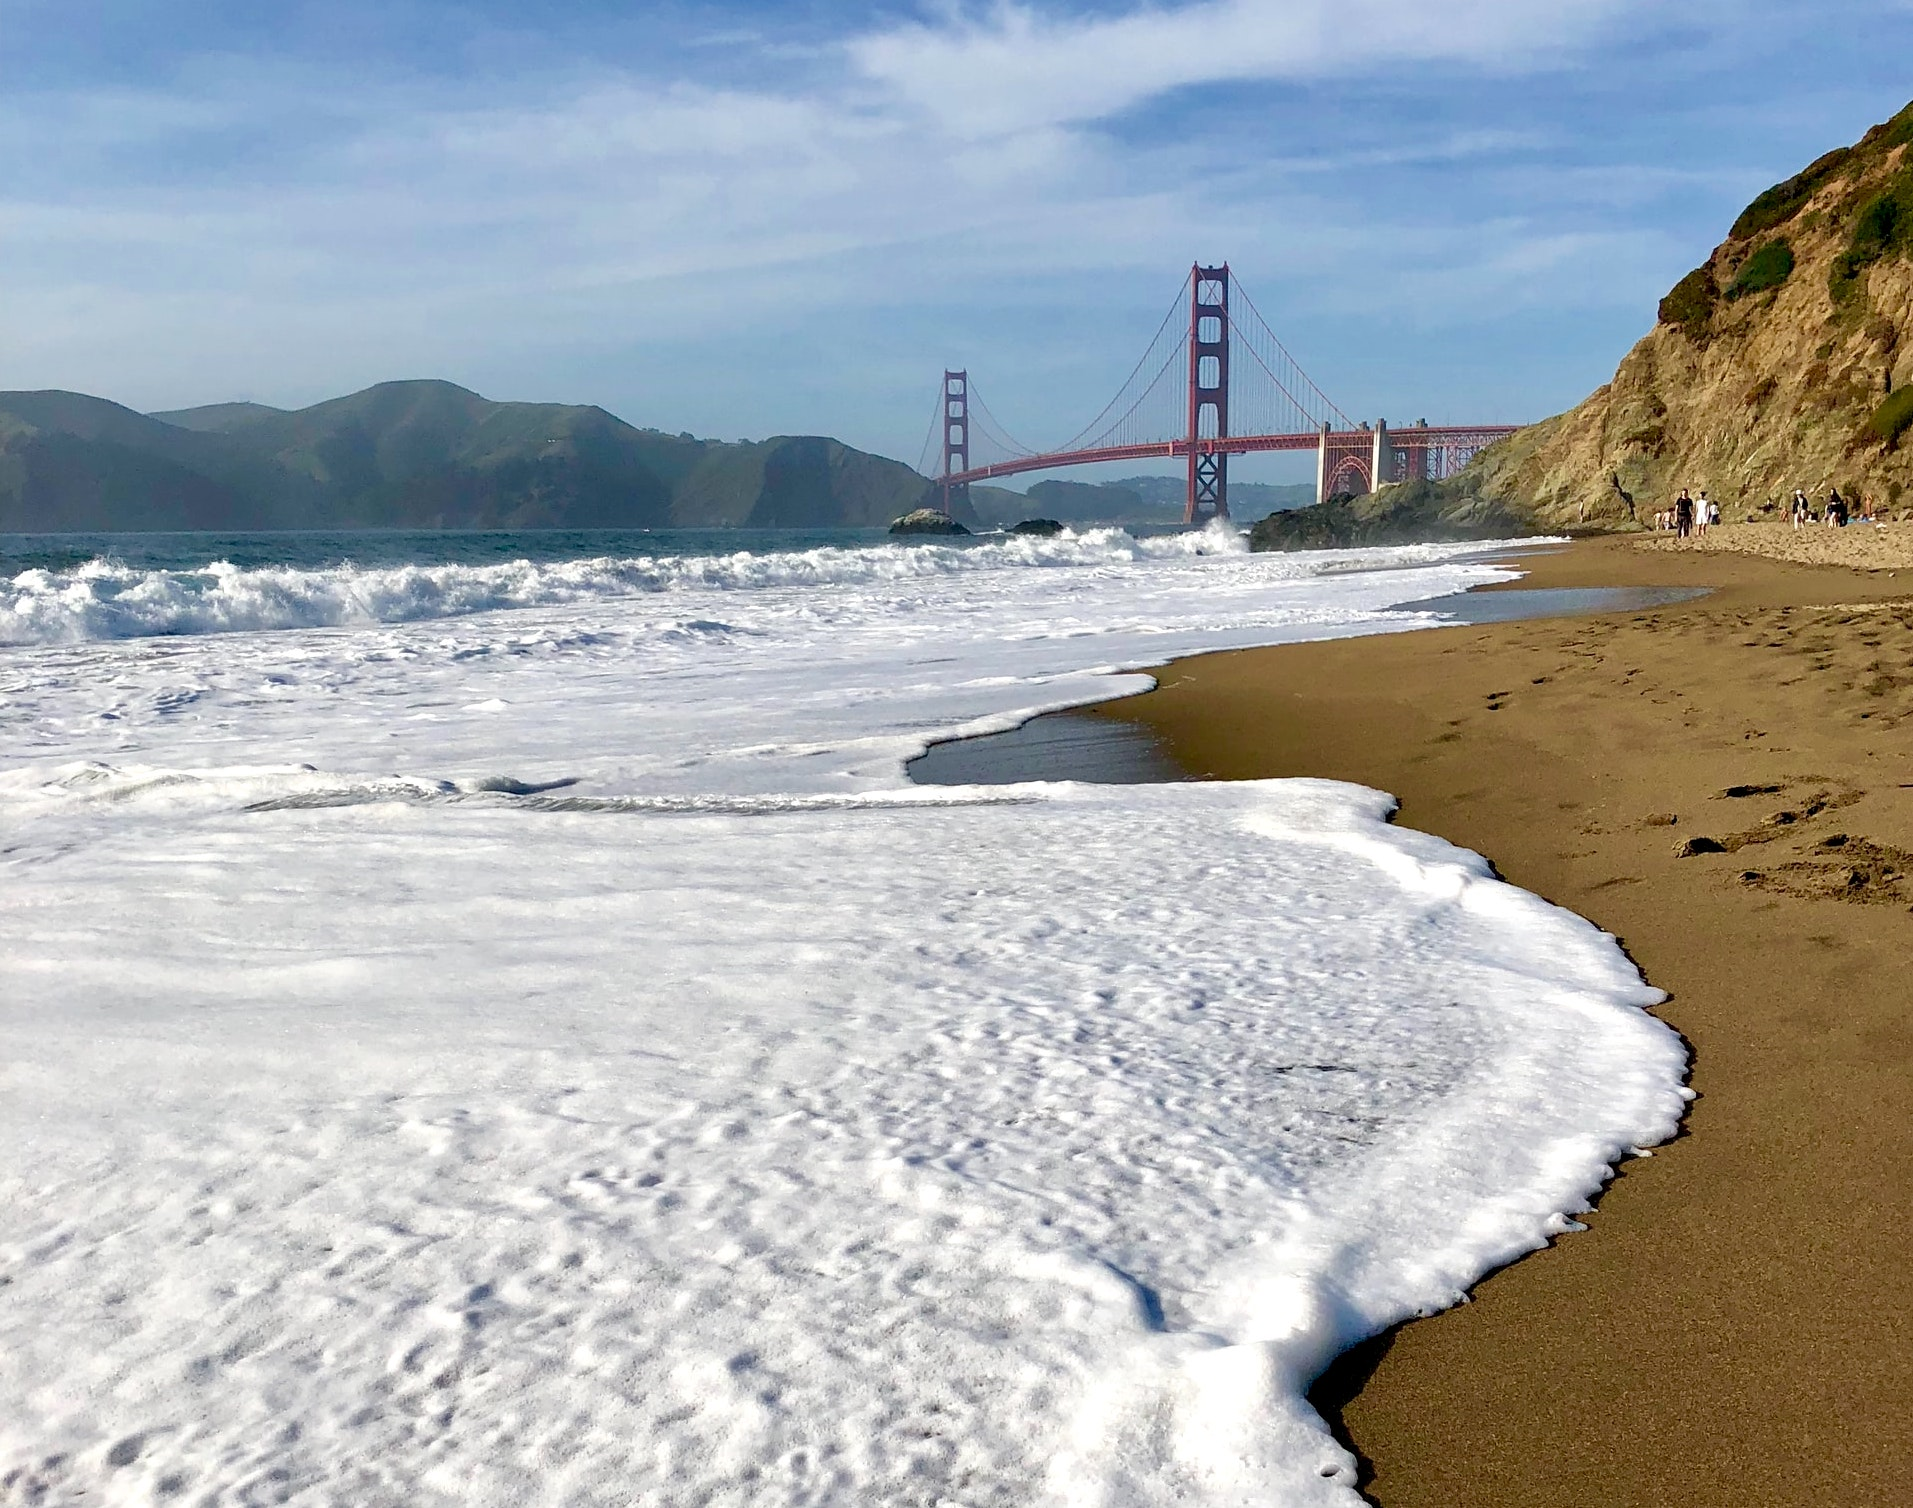 Baker Beach with waves in the foreground and Golden Gate Bridge in the distance as photographed from the Presidio of SF